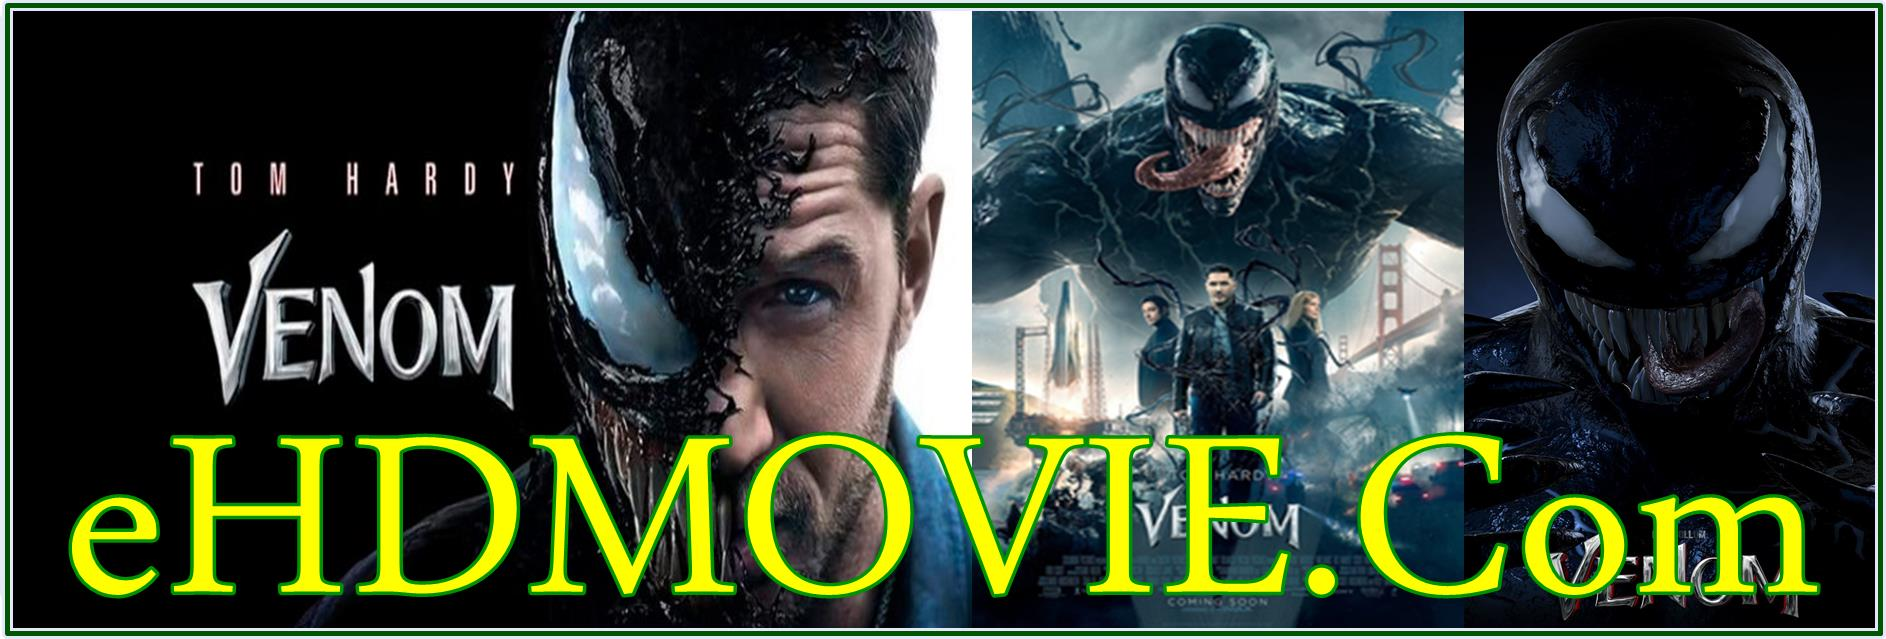 Venom 2018 Full Movie Dual Audio [Hindi – English] 1080p – 720p – HEVC – 480p ORG WEB-DL 350MB – 500MB – 1GB – 2.3GB ESubs Free Download